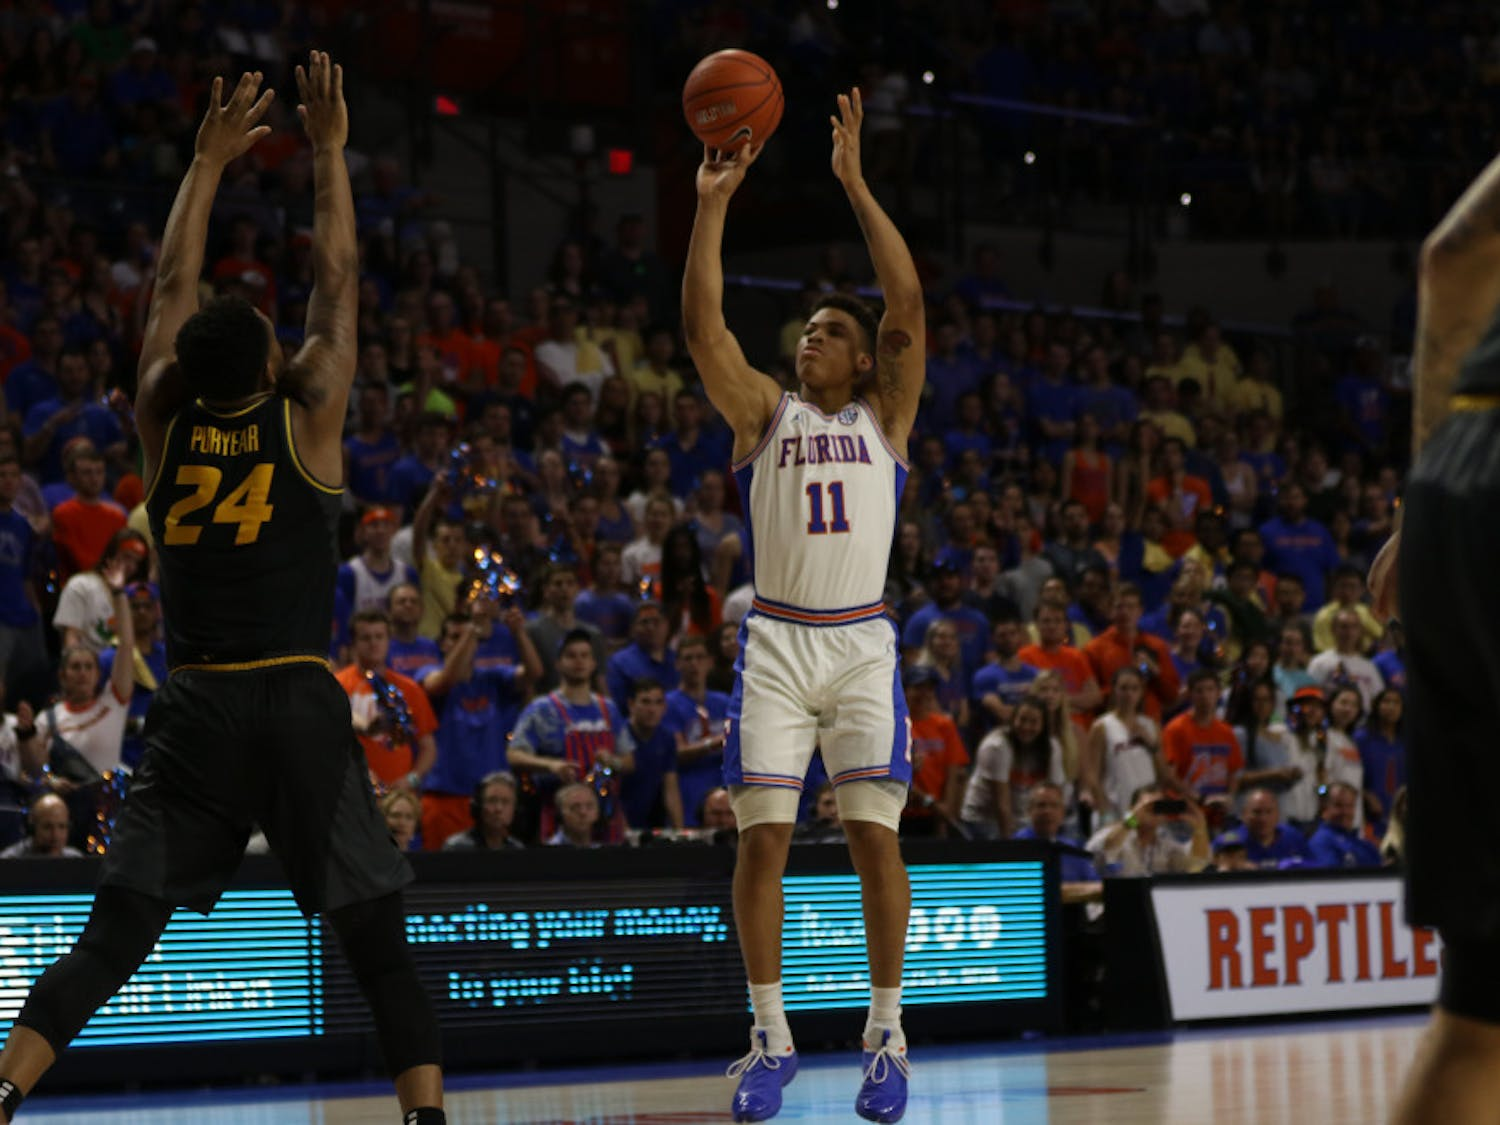 Florida forward Keyontae Johnson scored 13 points on 4-of-8 shooting in UF's 64-60 win over Missouri on Saturday at the O'Connell Center.